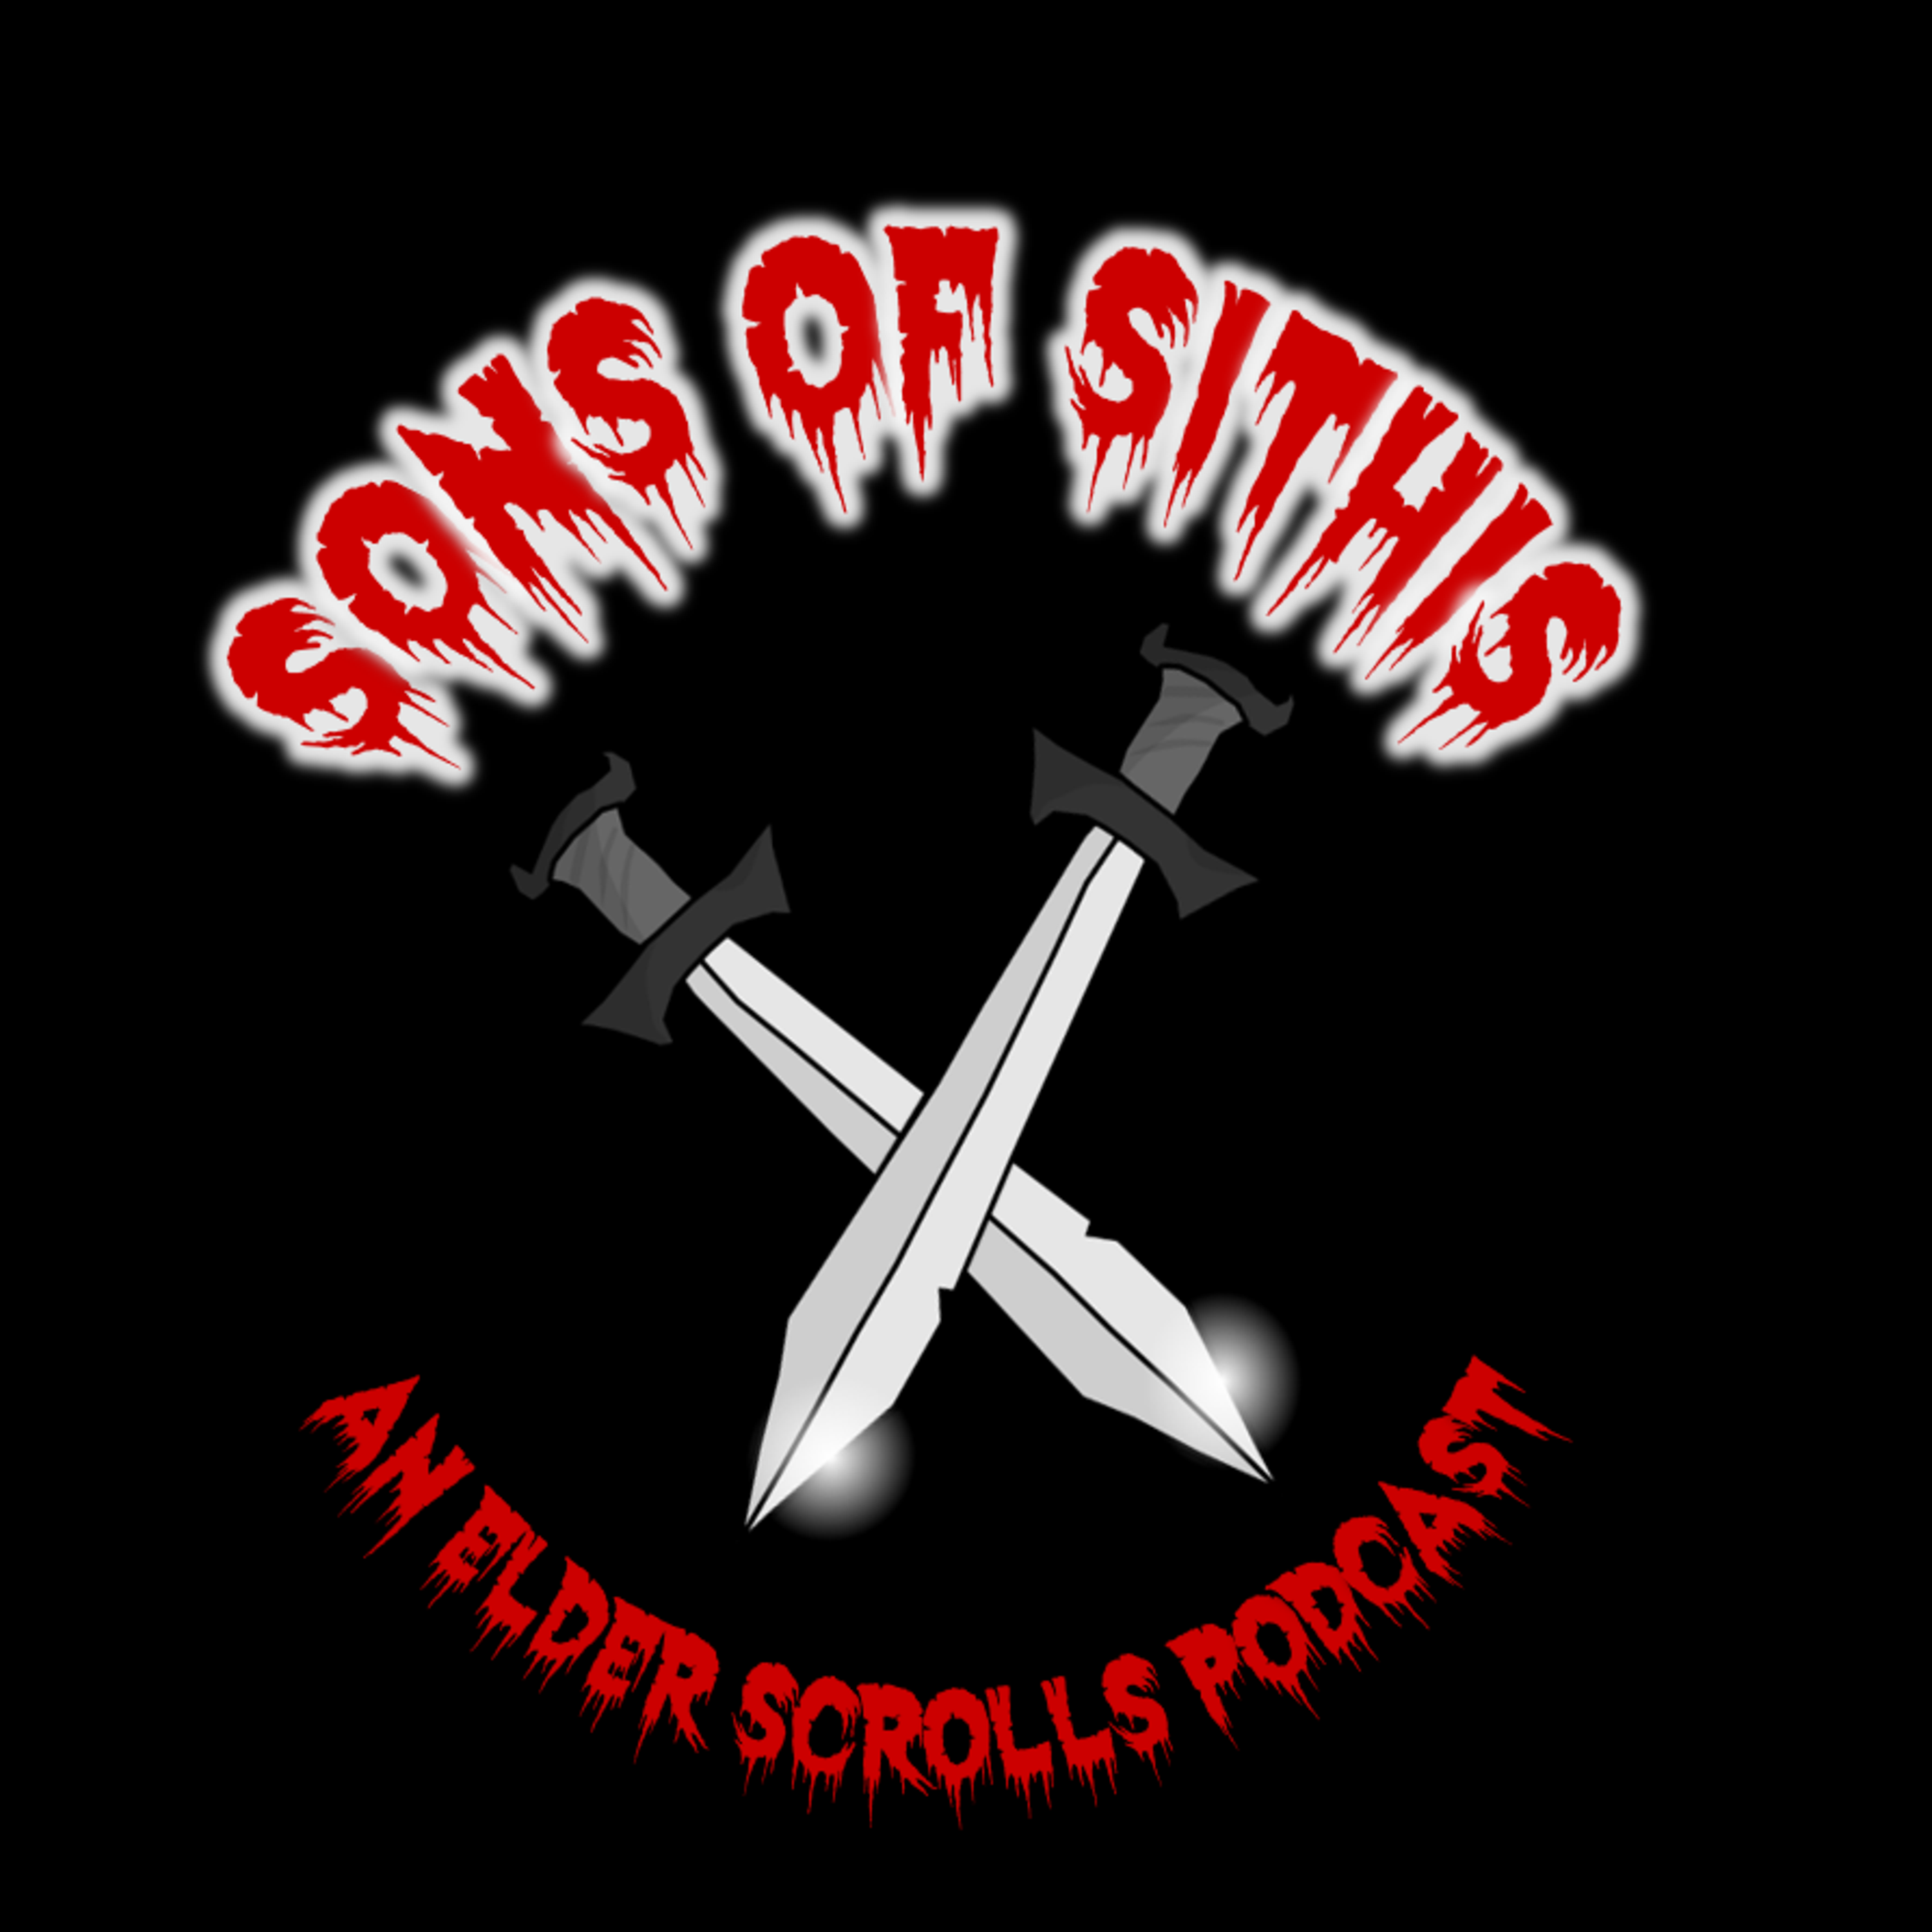 Sons Of Sithis By Sons Of Sithis An Elder Scrolls Podcast On Apple